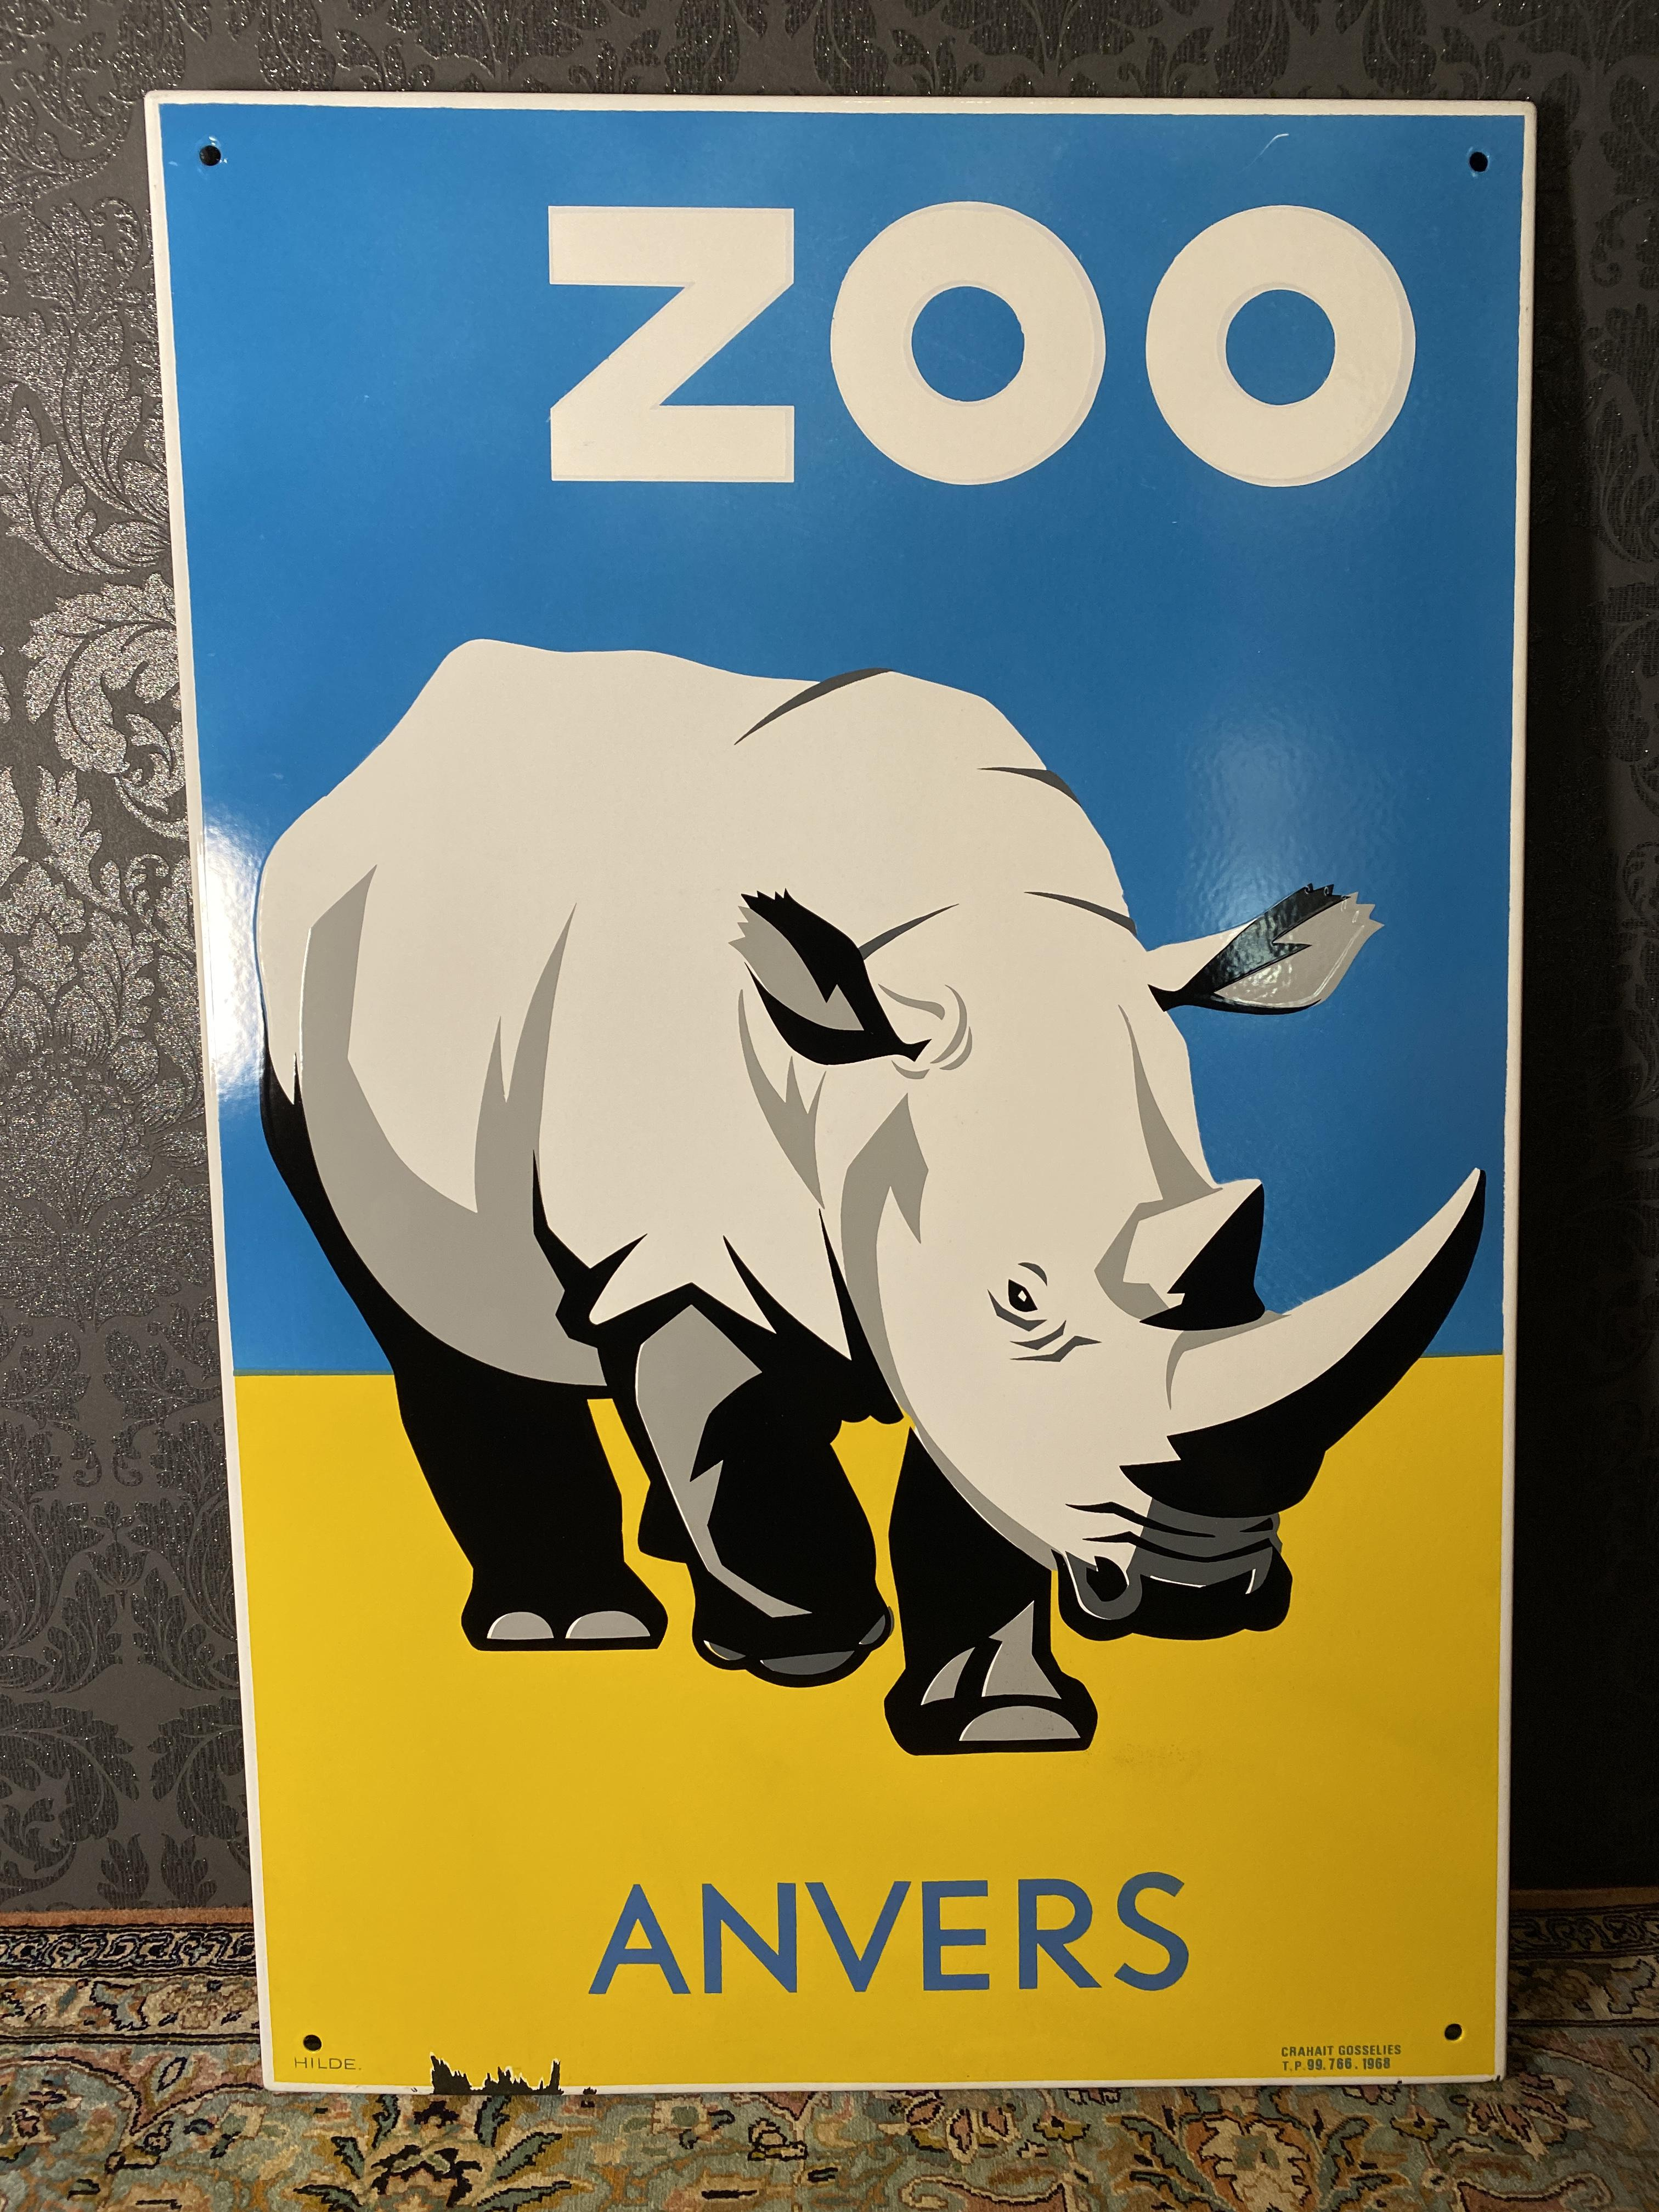 Altes Emailschild Nashorn Zoo Anvers um 1968